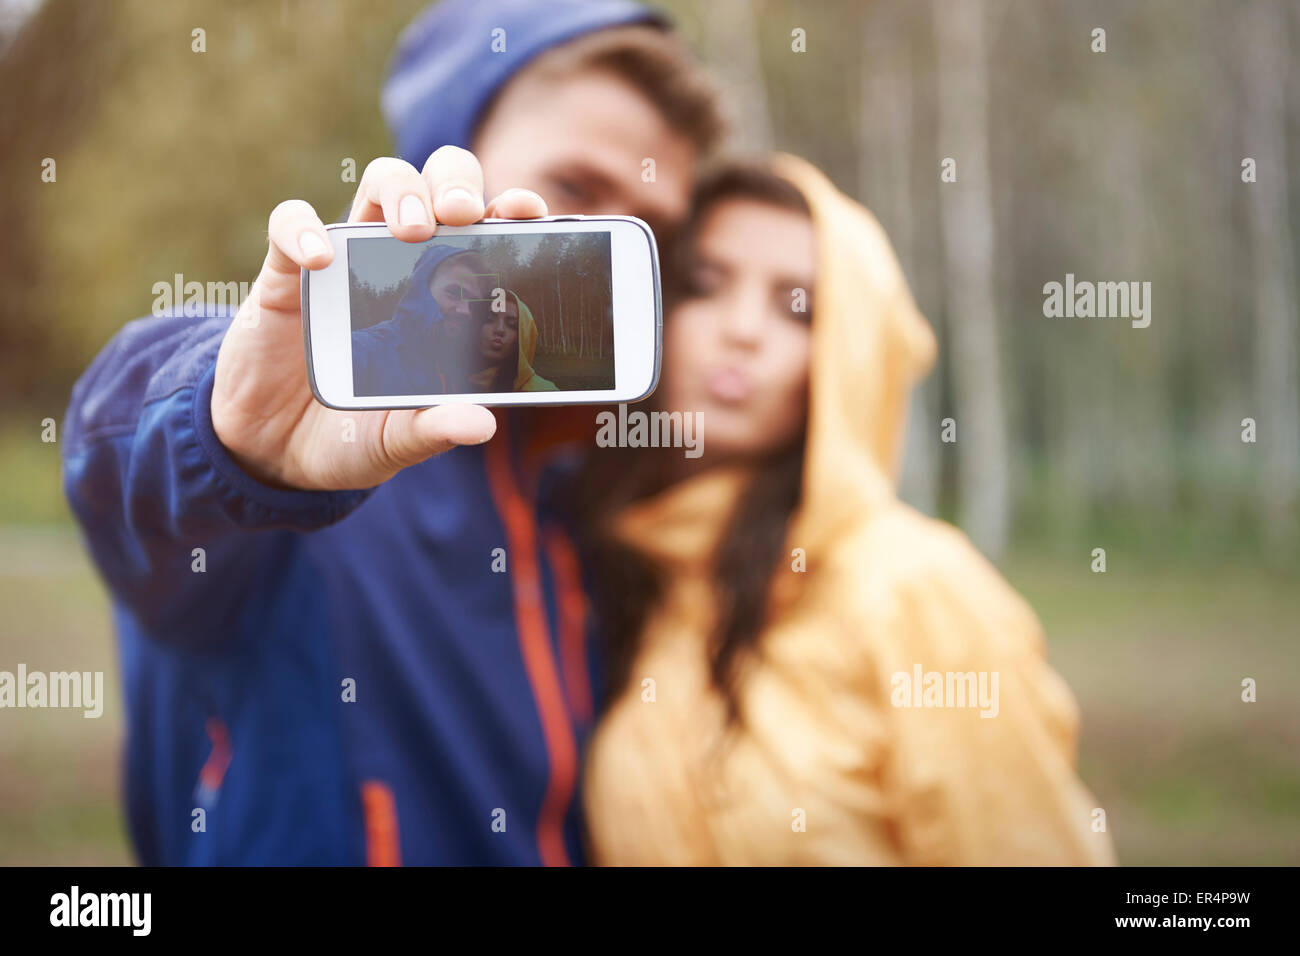 Catching memory in rainy day. Debica, Poland - Stock Image